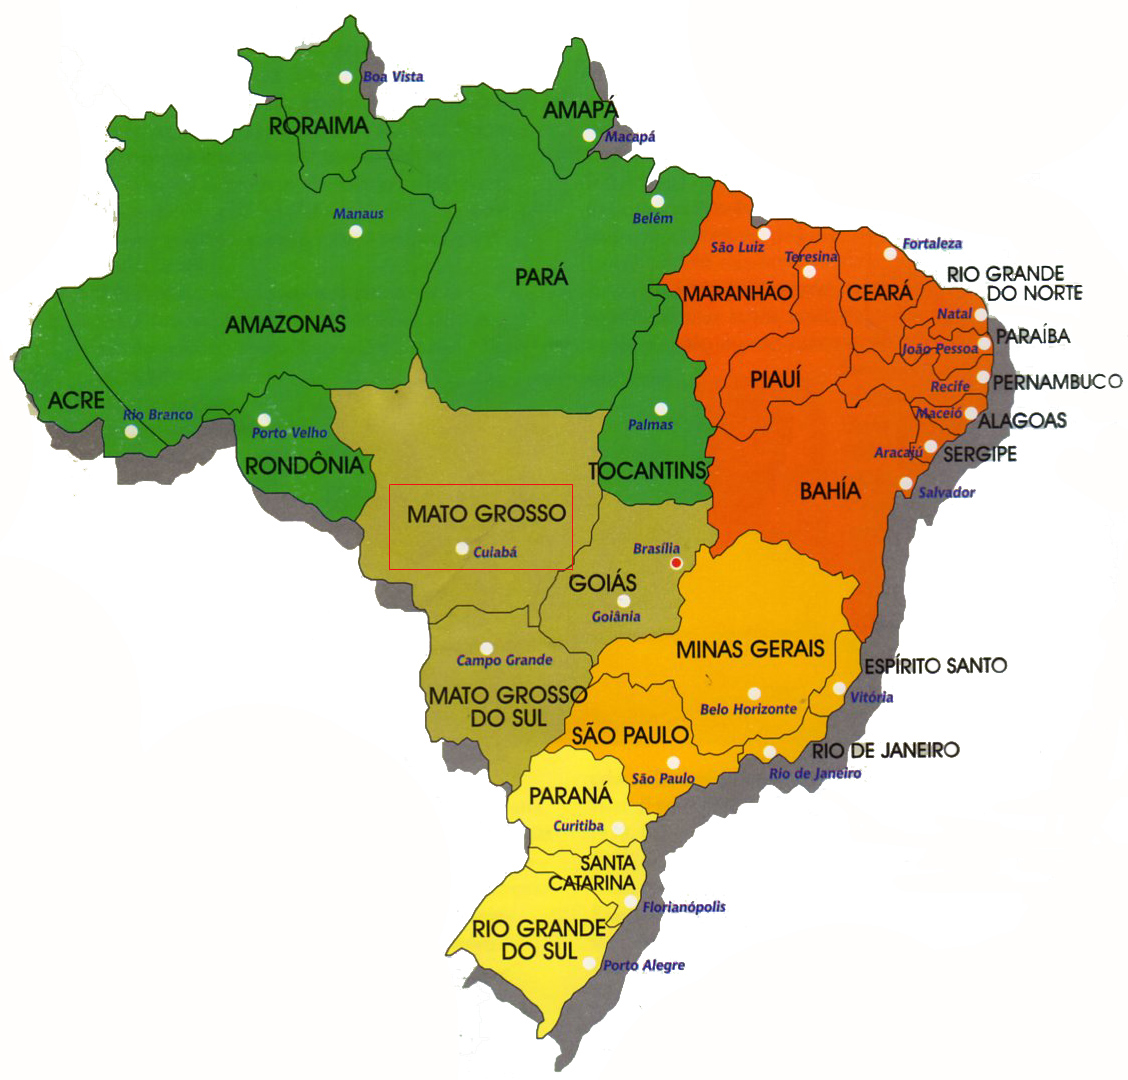 mapa-do-brasil-por-estados